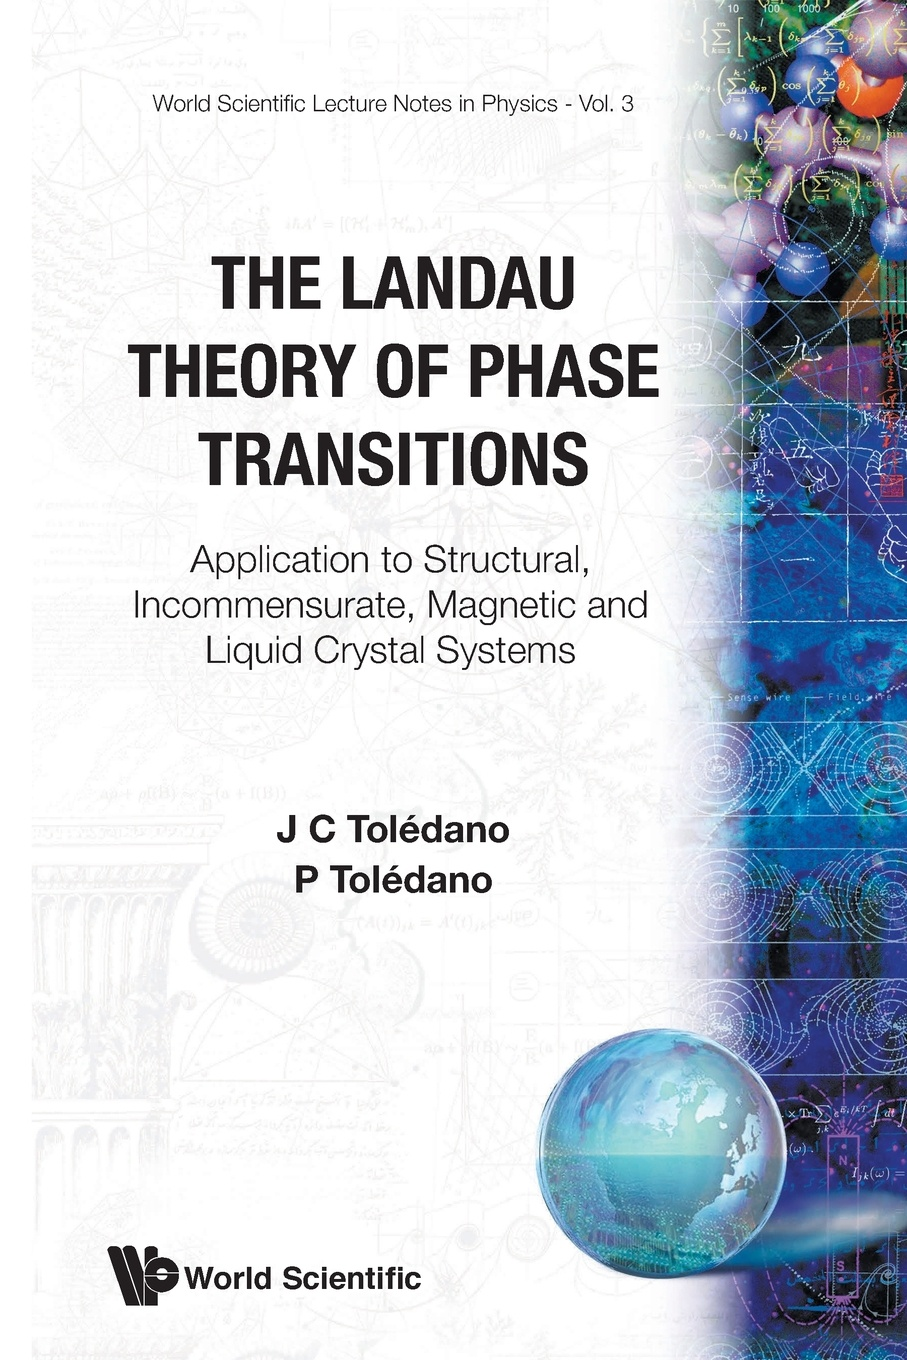 J C Tolédano, P Tolédano LANDAU THEORY OF PHASE TRANSITIONS, THE. APPLICATION TO STRUCTURAL, INCOMMENSURATE, MAGNETIC AND LIQUID CRYSTAL SYSTEMS картина по номерам школа талантов зимний дом 1675811 30 х 40 см